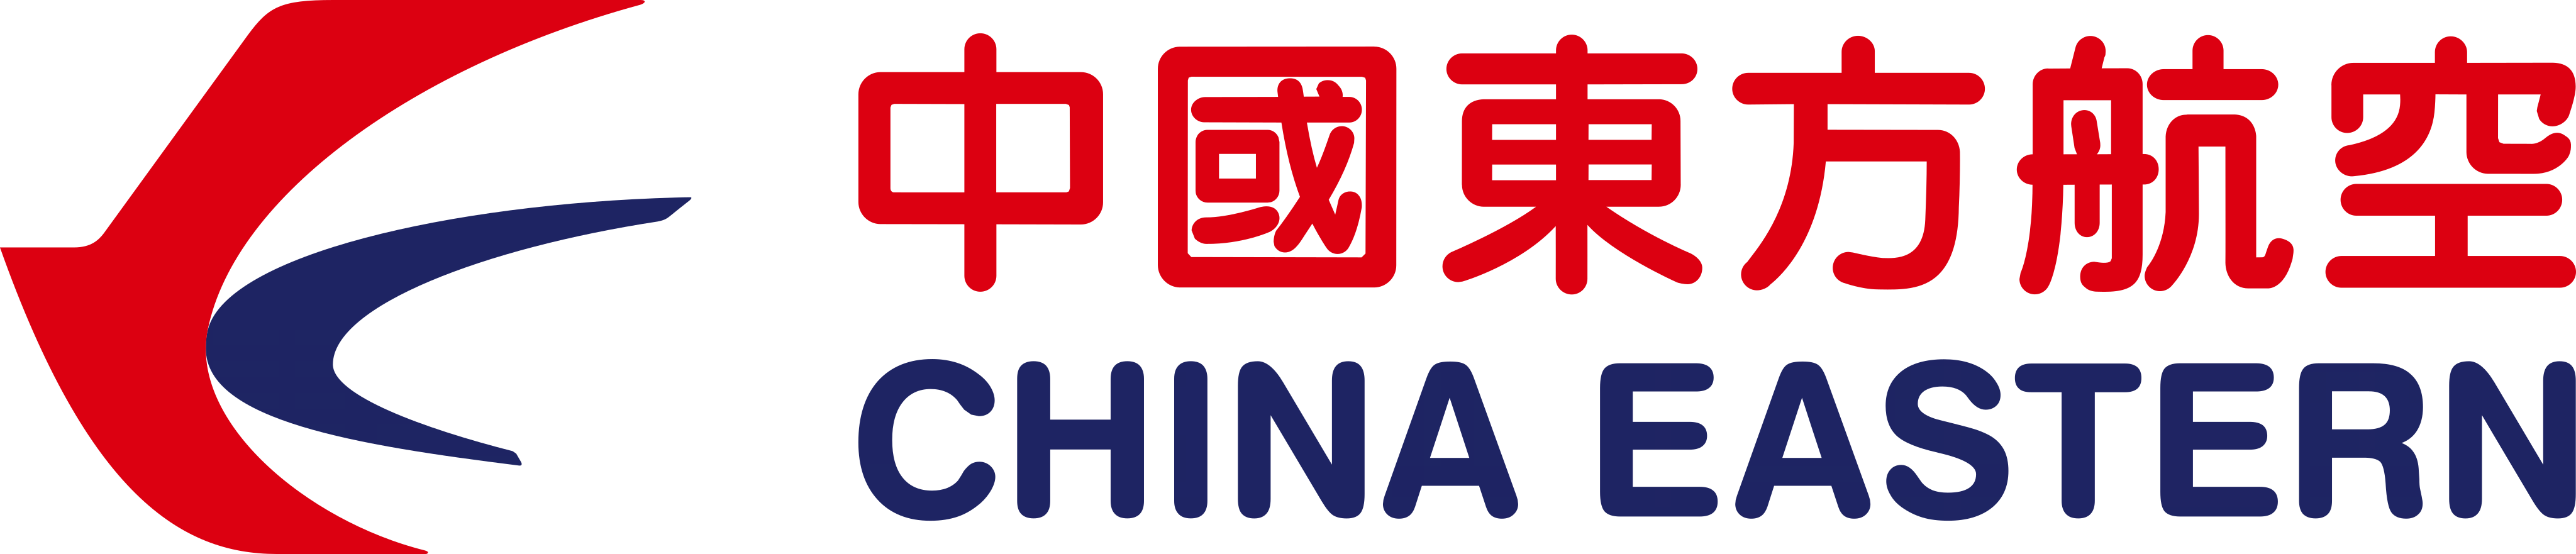 China Eastern Airlines Logo.